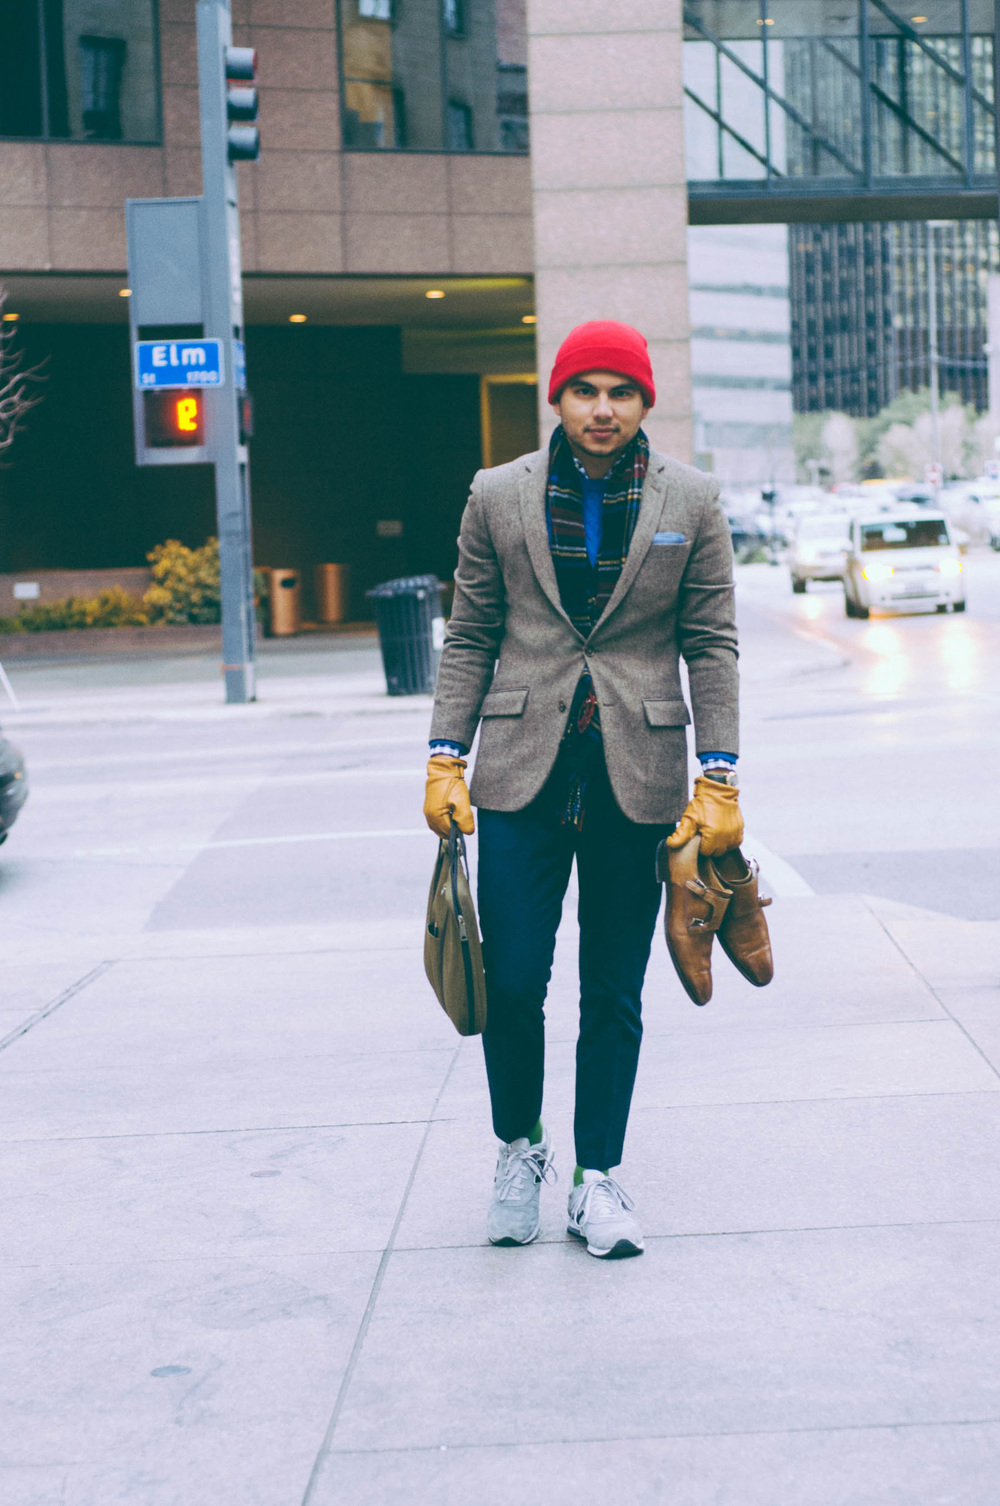 Blazer: J.Crew | Sweater: H&M (similar here) | Shirt: J.Crew | Pants: J.Crew | Shoes: New Balance x J.Crew | Socks: J.Crew | Scarf: Polo Ralph Lauren | Shoes (in hand): Magnanni | Bag: Jack Spade | Beanie: similar here | Pocket Square: The Tie Bar | Gloves: Jack Spade | Watch: Shinola